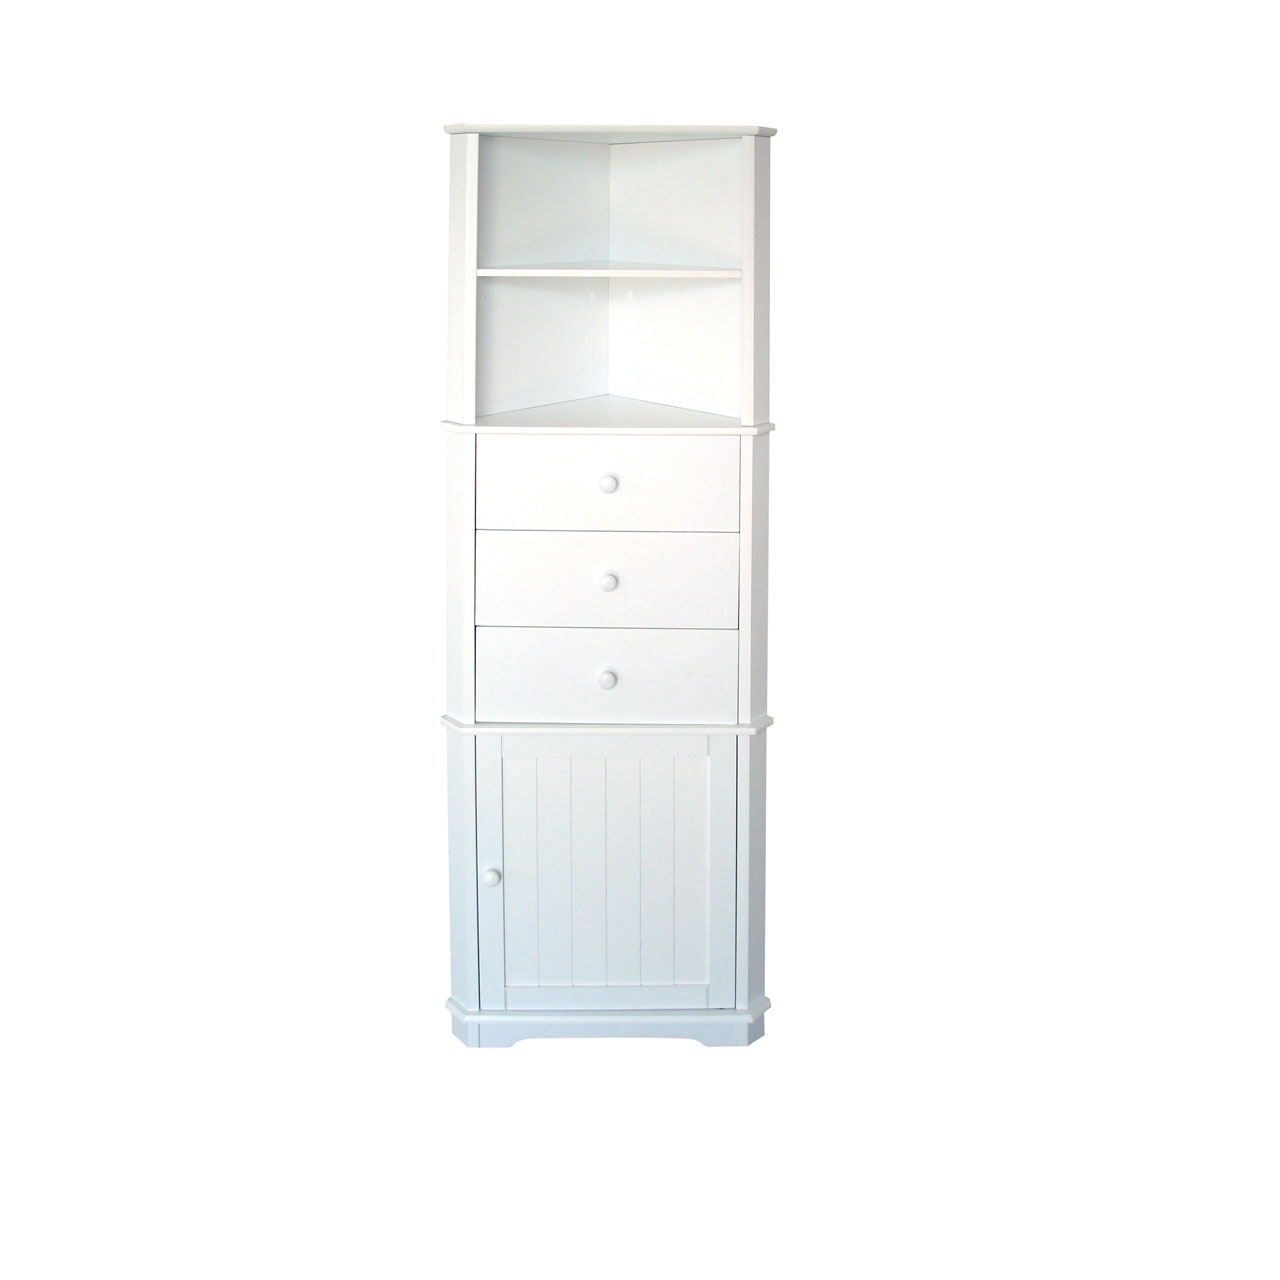 White wood bathroom kitchen corner unit cupboard drawers - White bathroom corner shelf unit ...